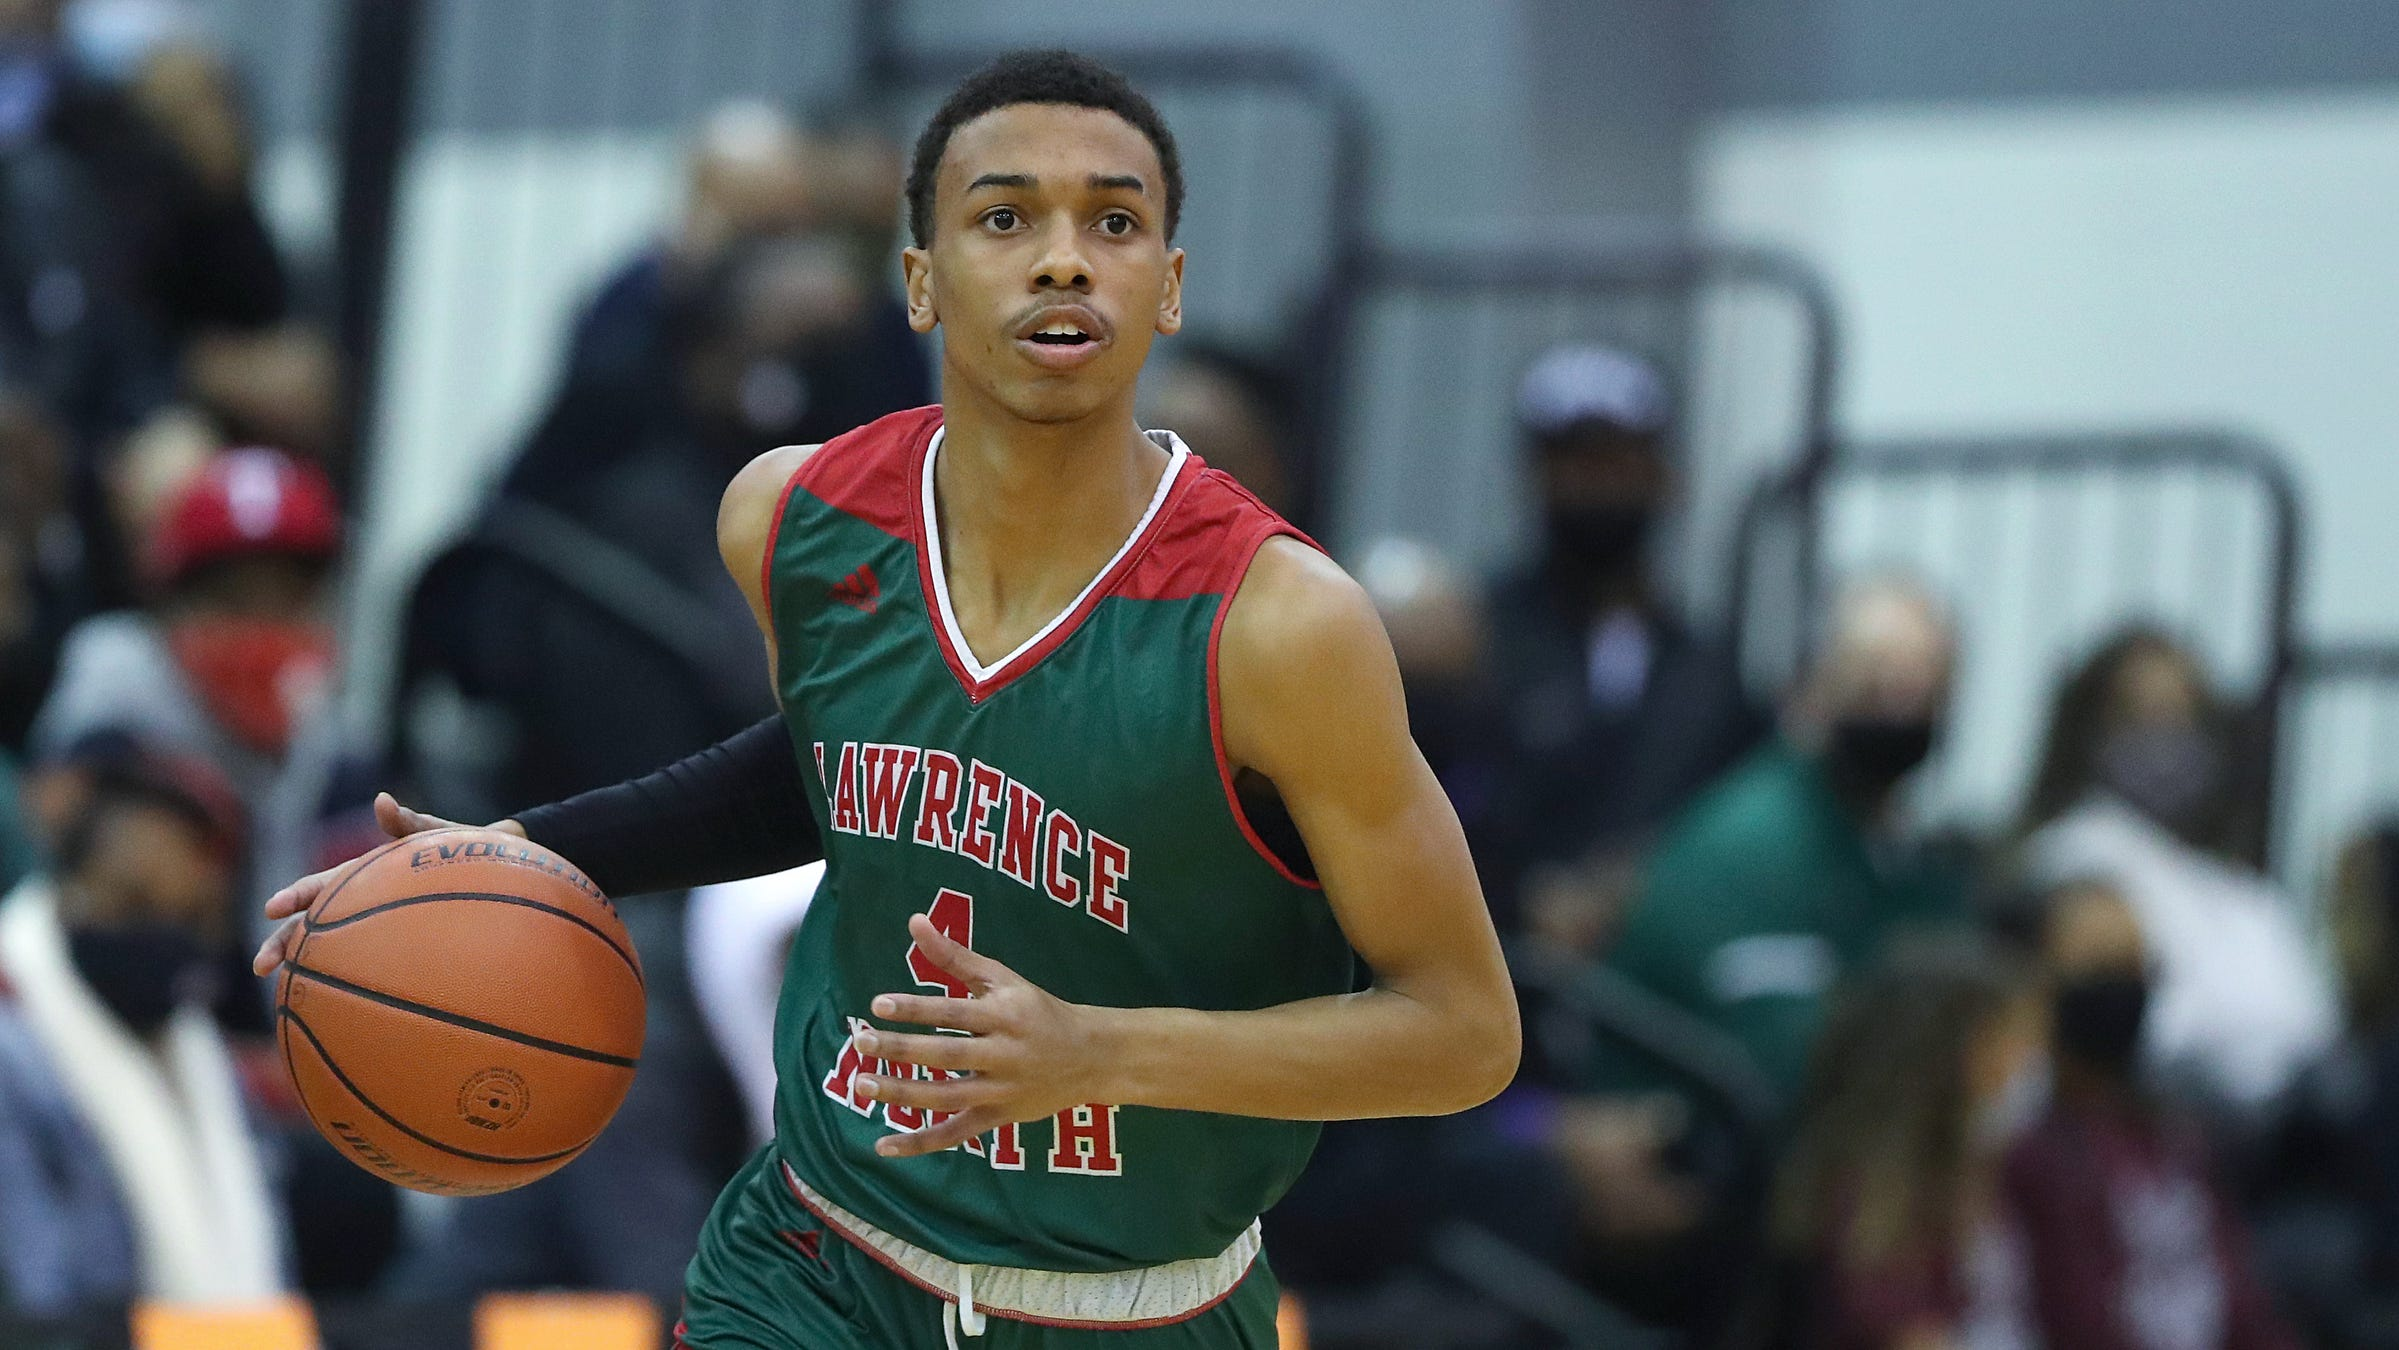 Lawrence North's C.J. Gunn sets date for college decision